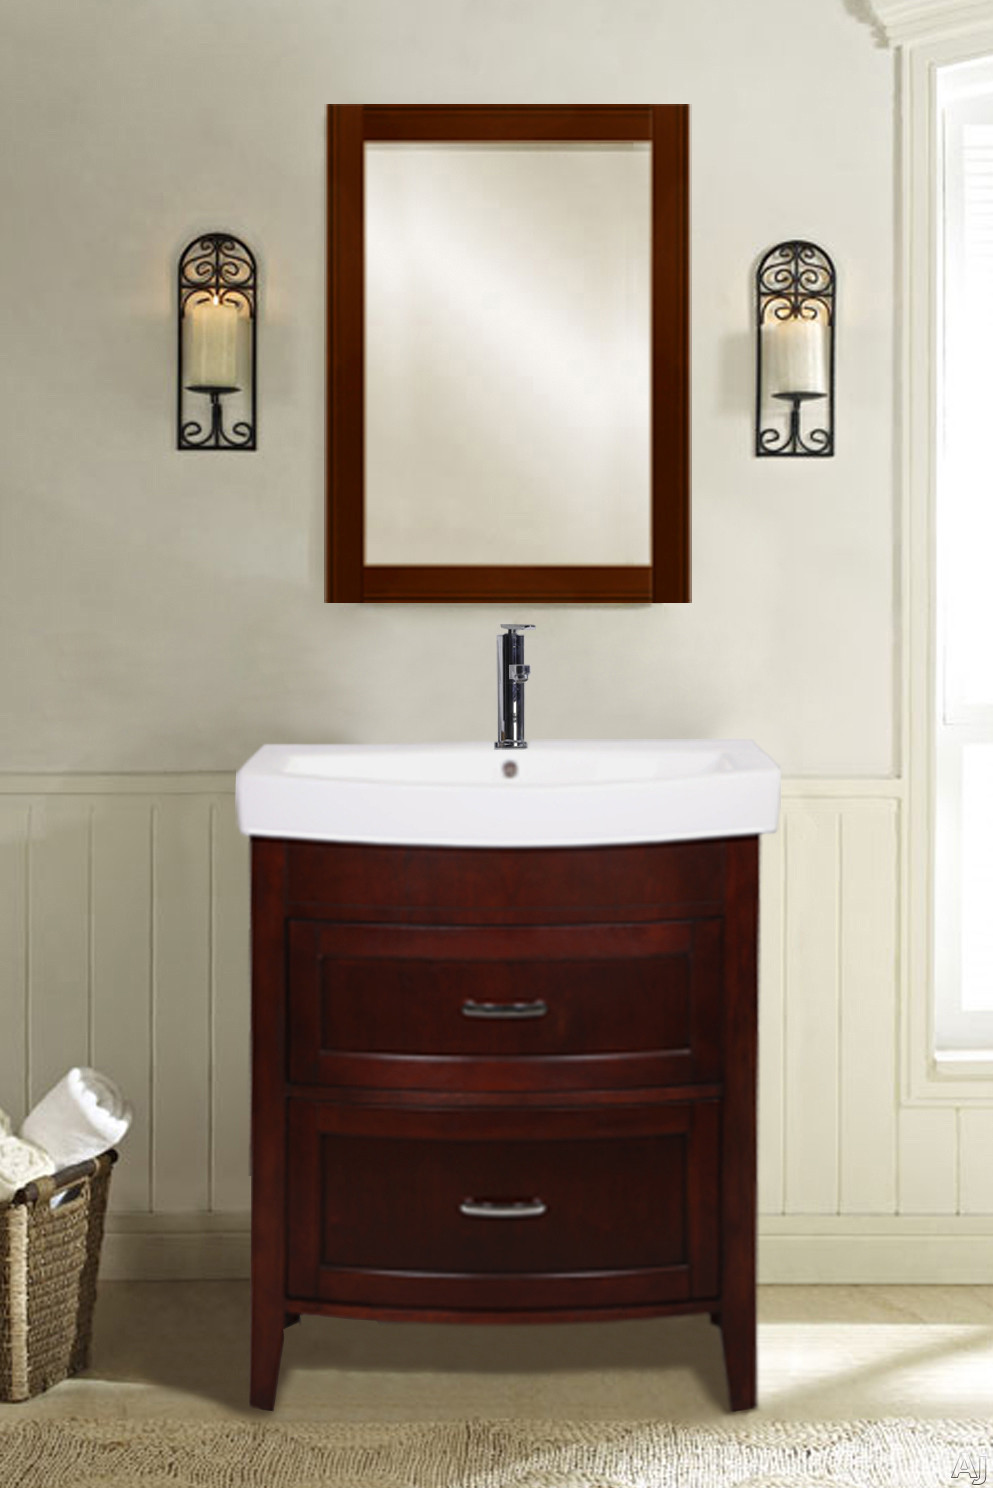 Empire Industries Arch Collection A2102 20 Inch Freestanding Vanity with 2 Drawers for Your Royale Collection Ceramic Drop In Bathroom Sink